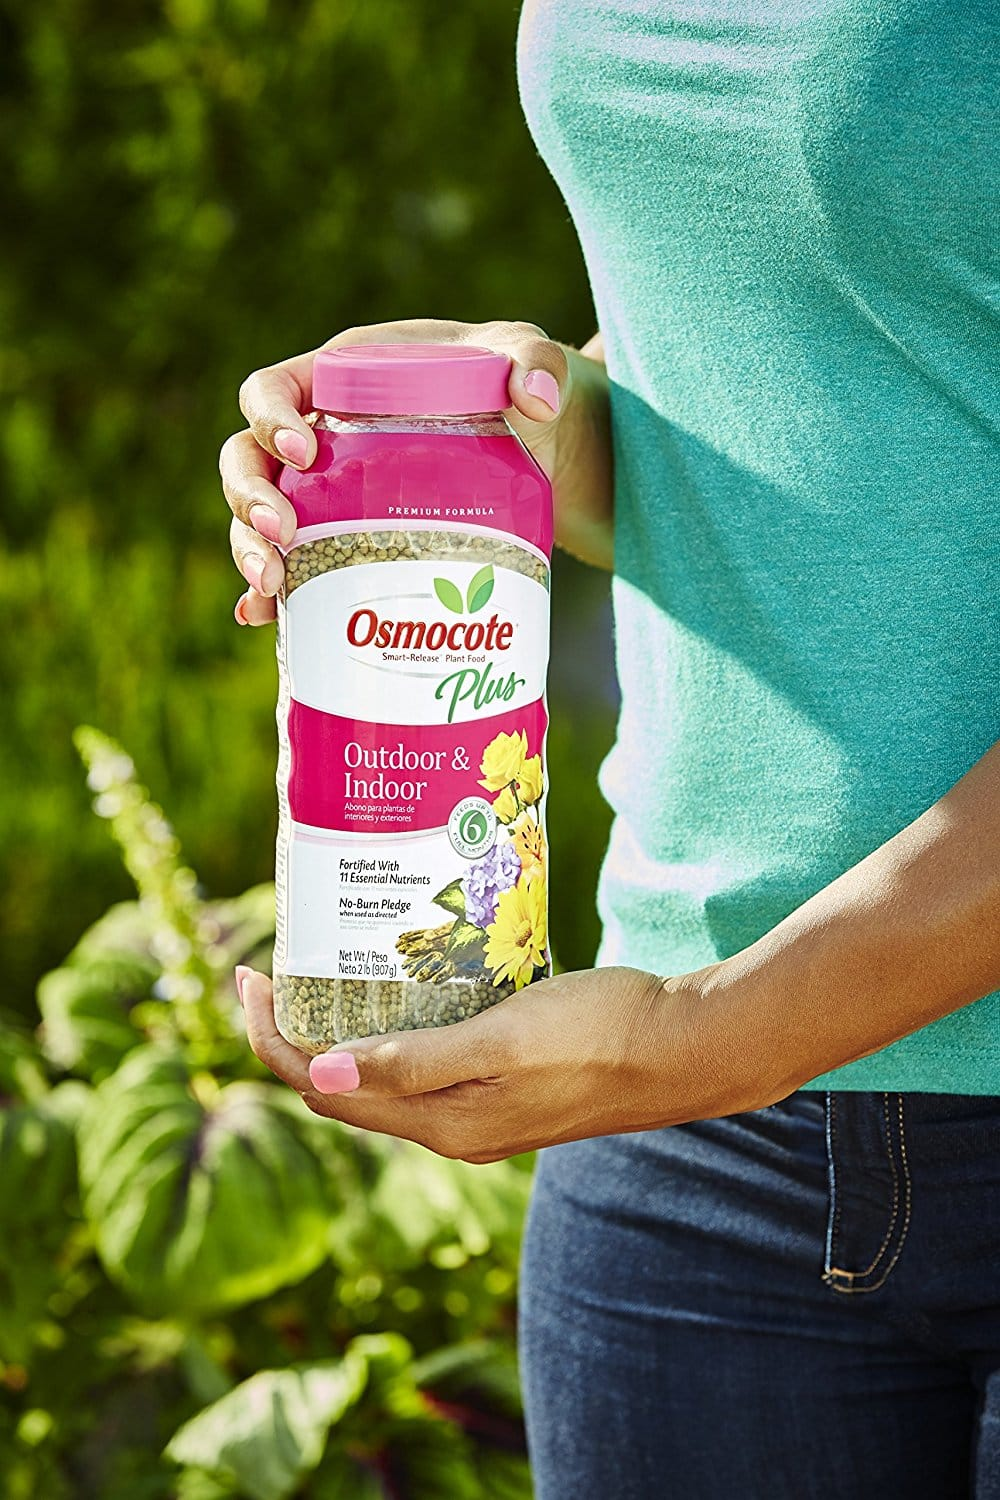 Osmocote Plus Outdoor and Indoor Smart-Release Plant Food, 2-Pound $5 amazon.com